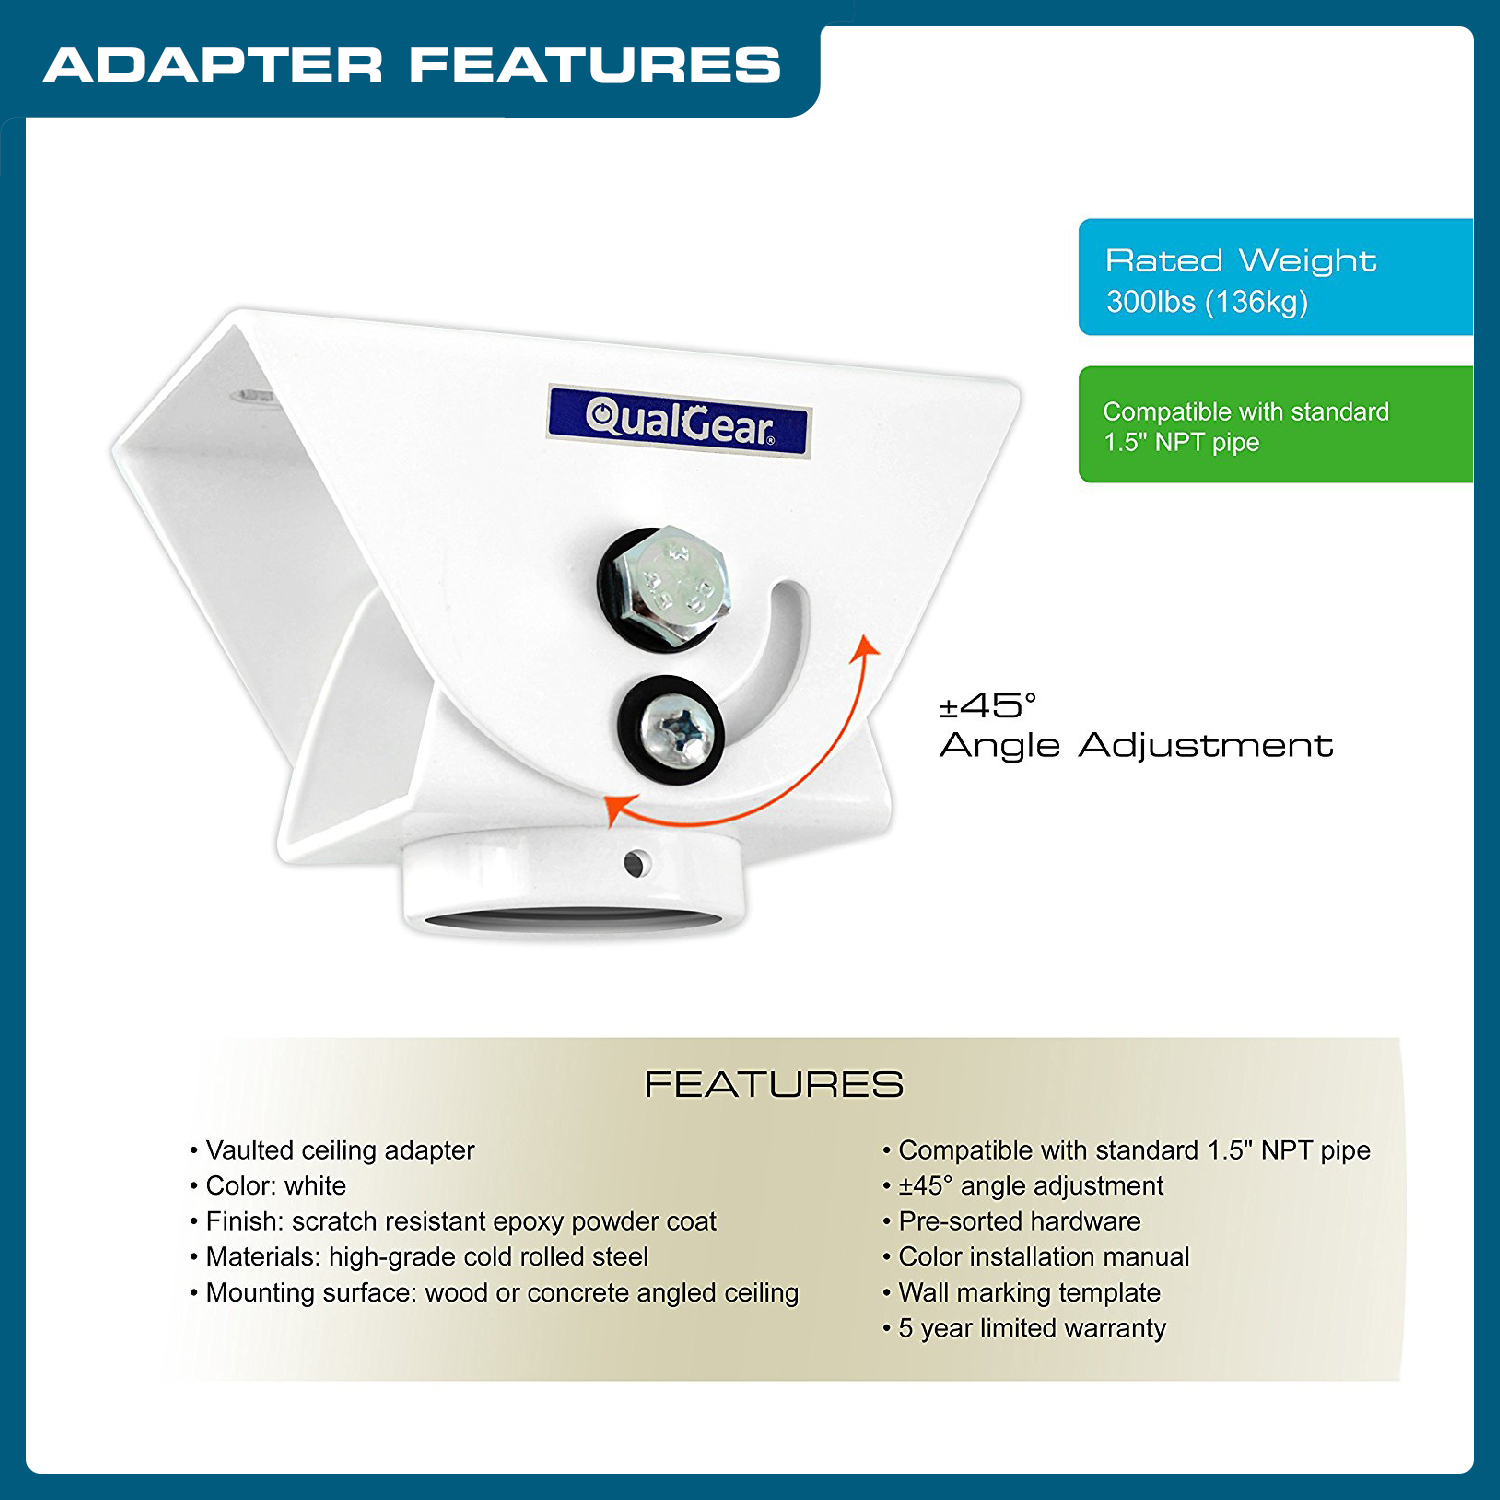 Vaulted Ceiling Adapter